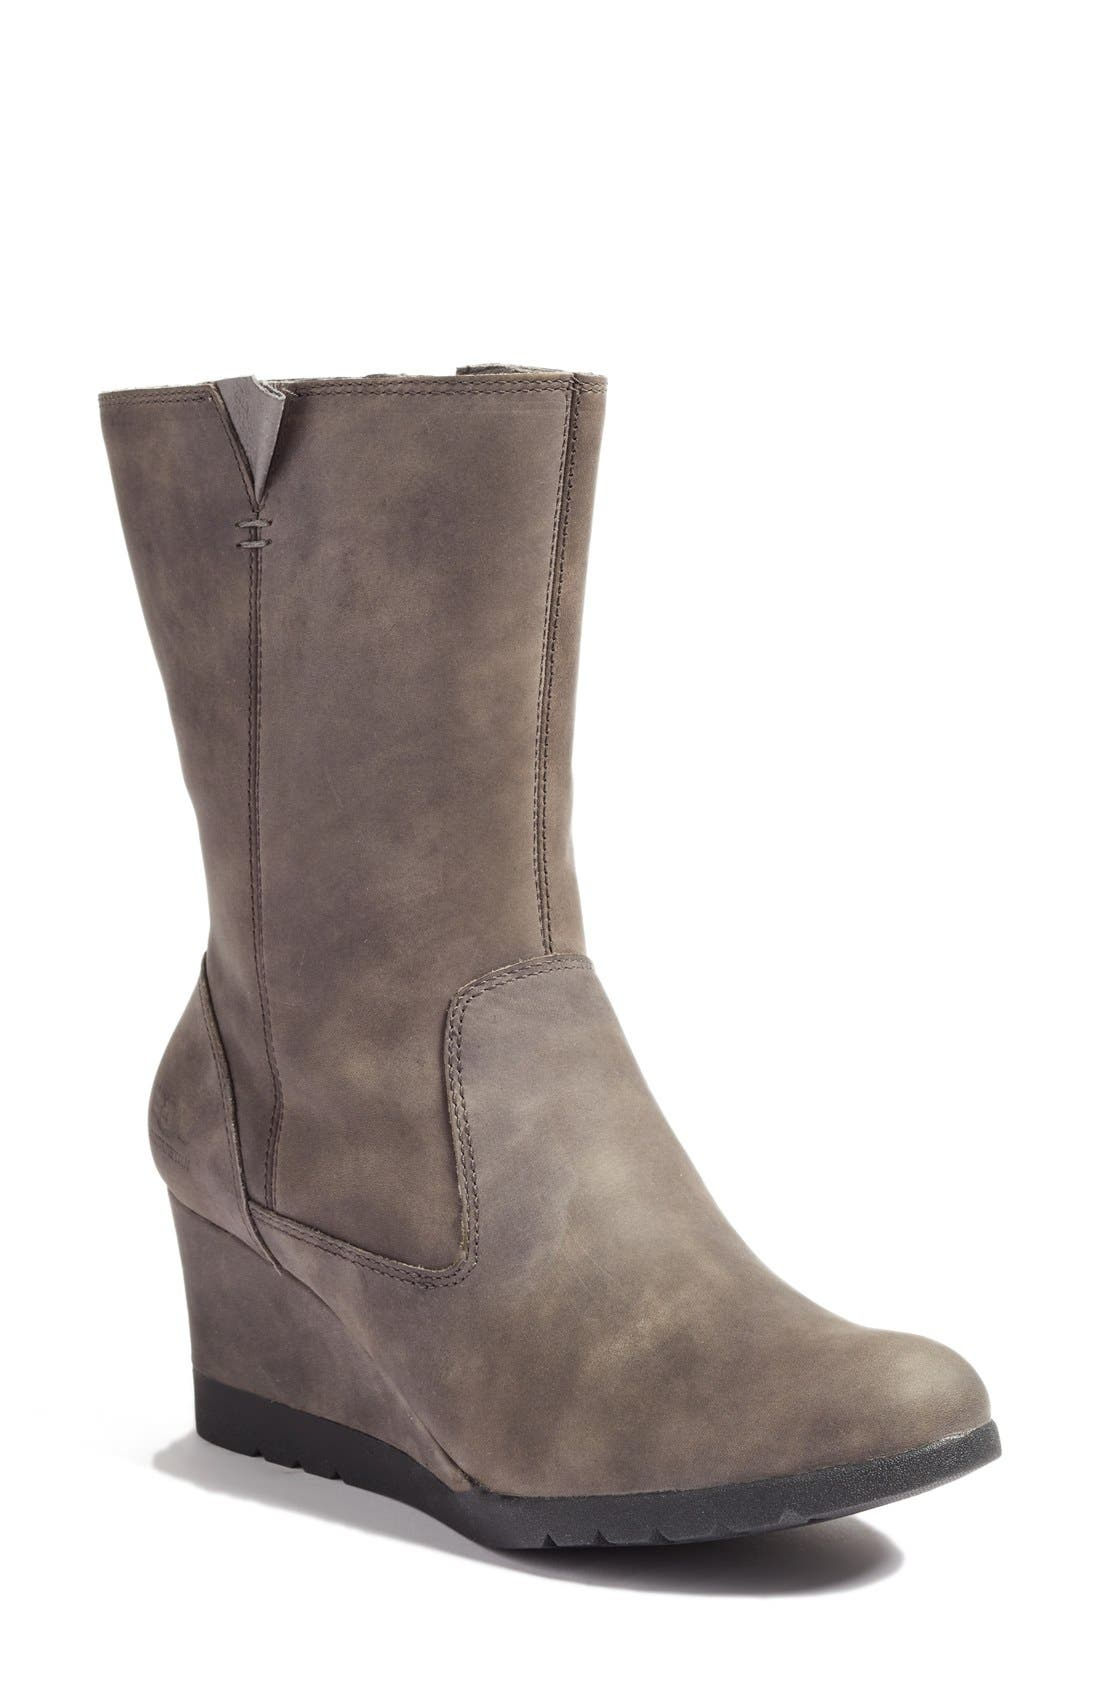 Alternate Image 1 Selected - UGG® Joely Wedge Boot (Women)